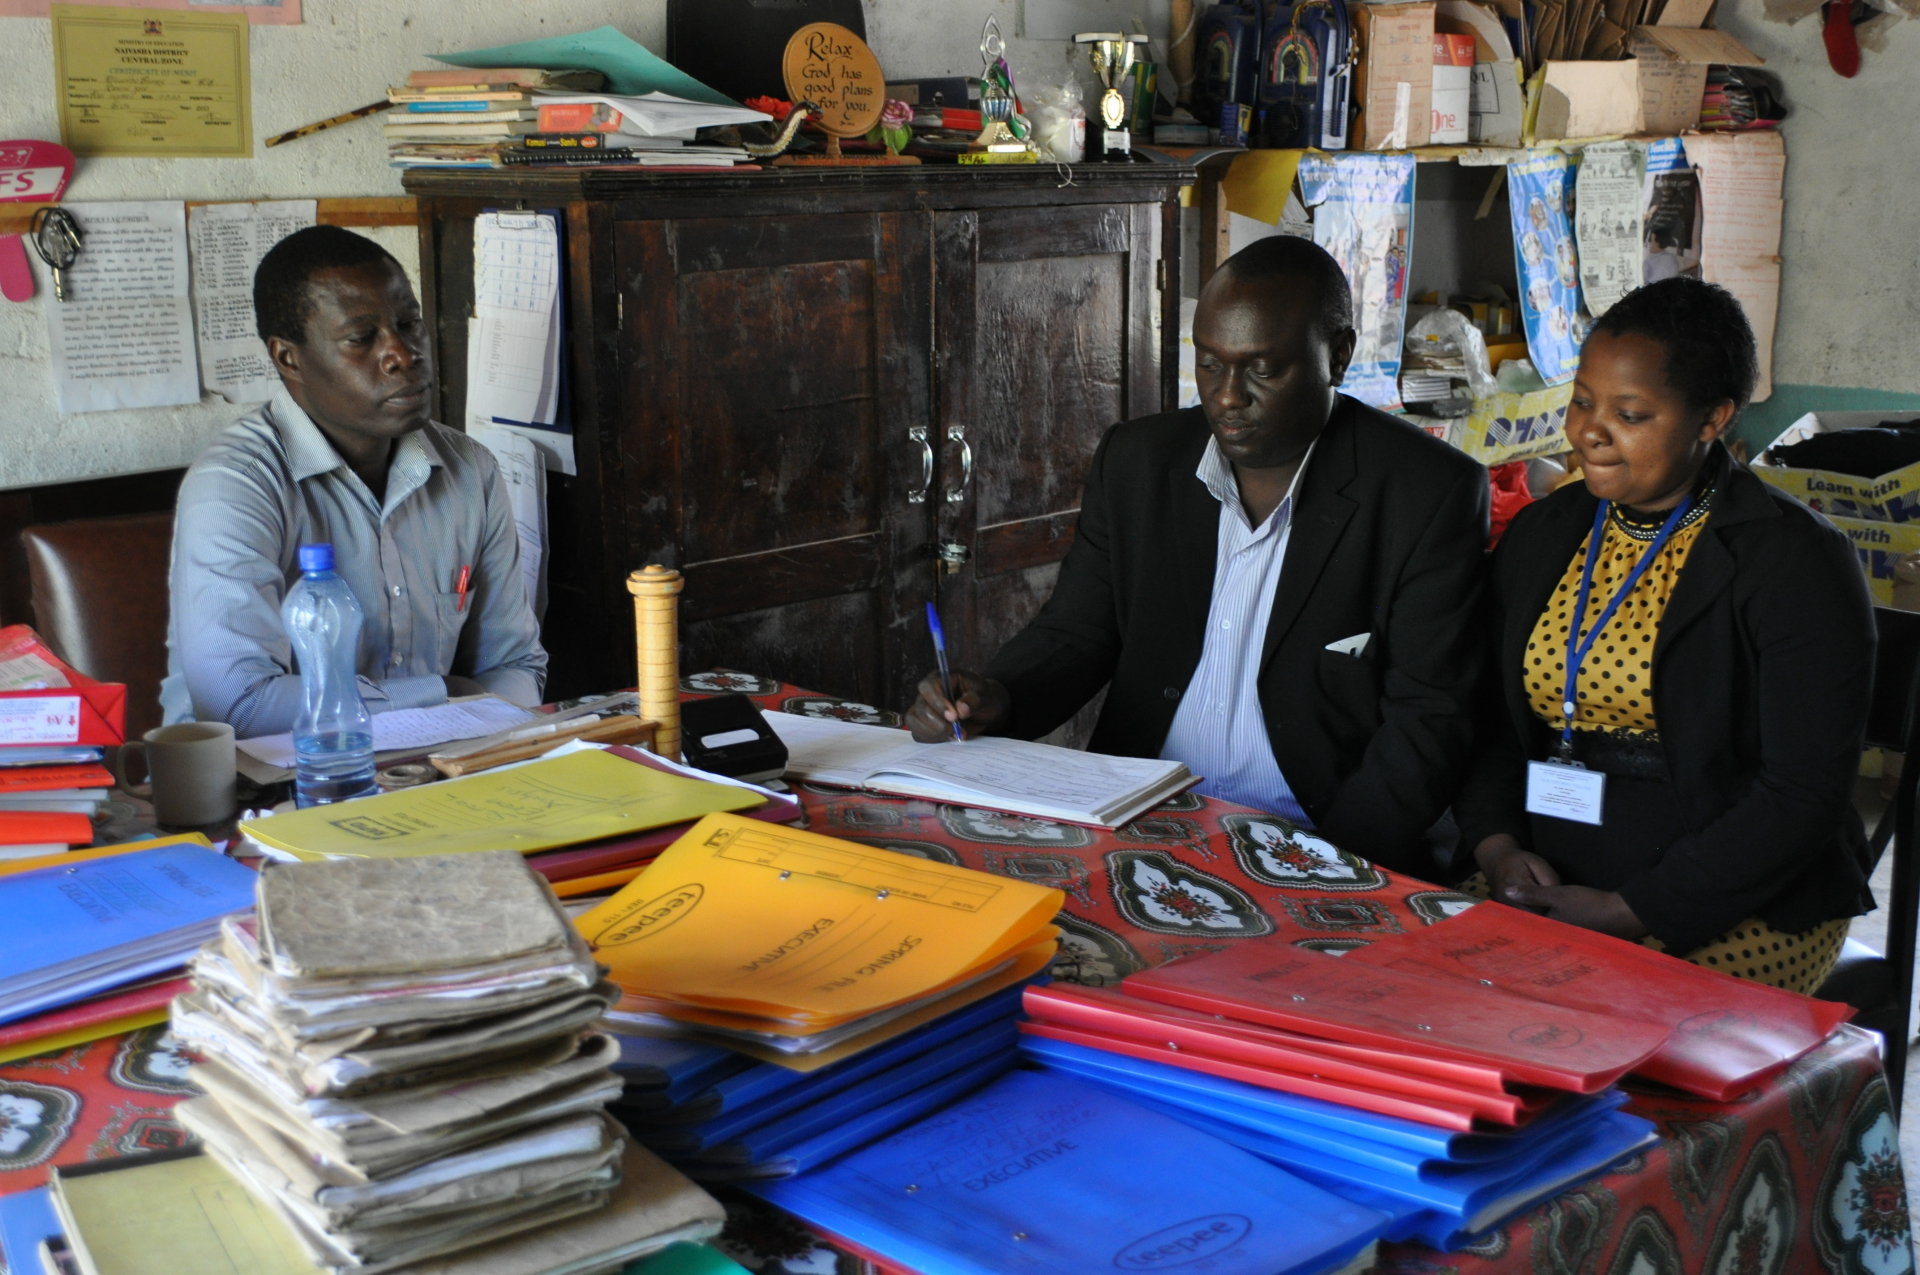 Deputy Head Teacher (left) with ASN Upendo Village Child Welfare Officer, Samuel Maina, and Assistant Child Welfare Officer,  Patricia Mwaura